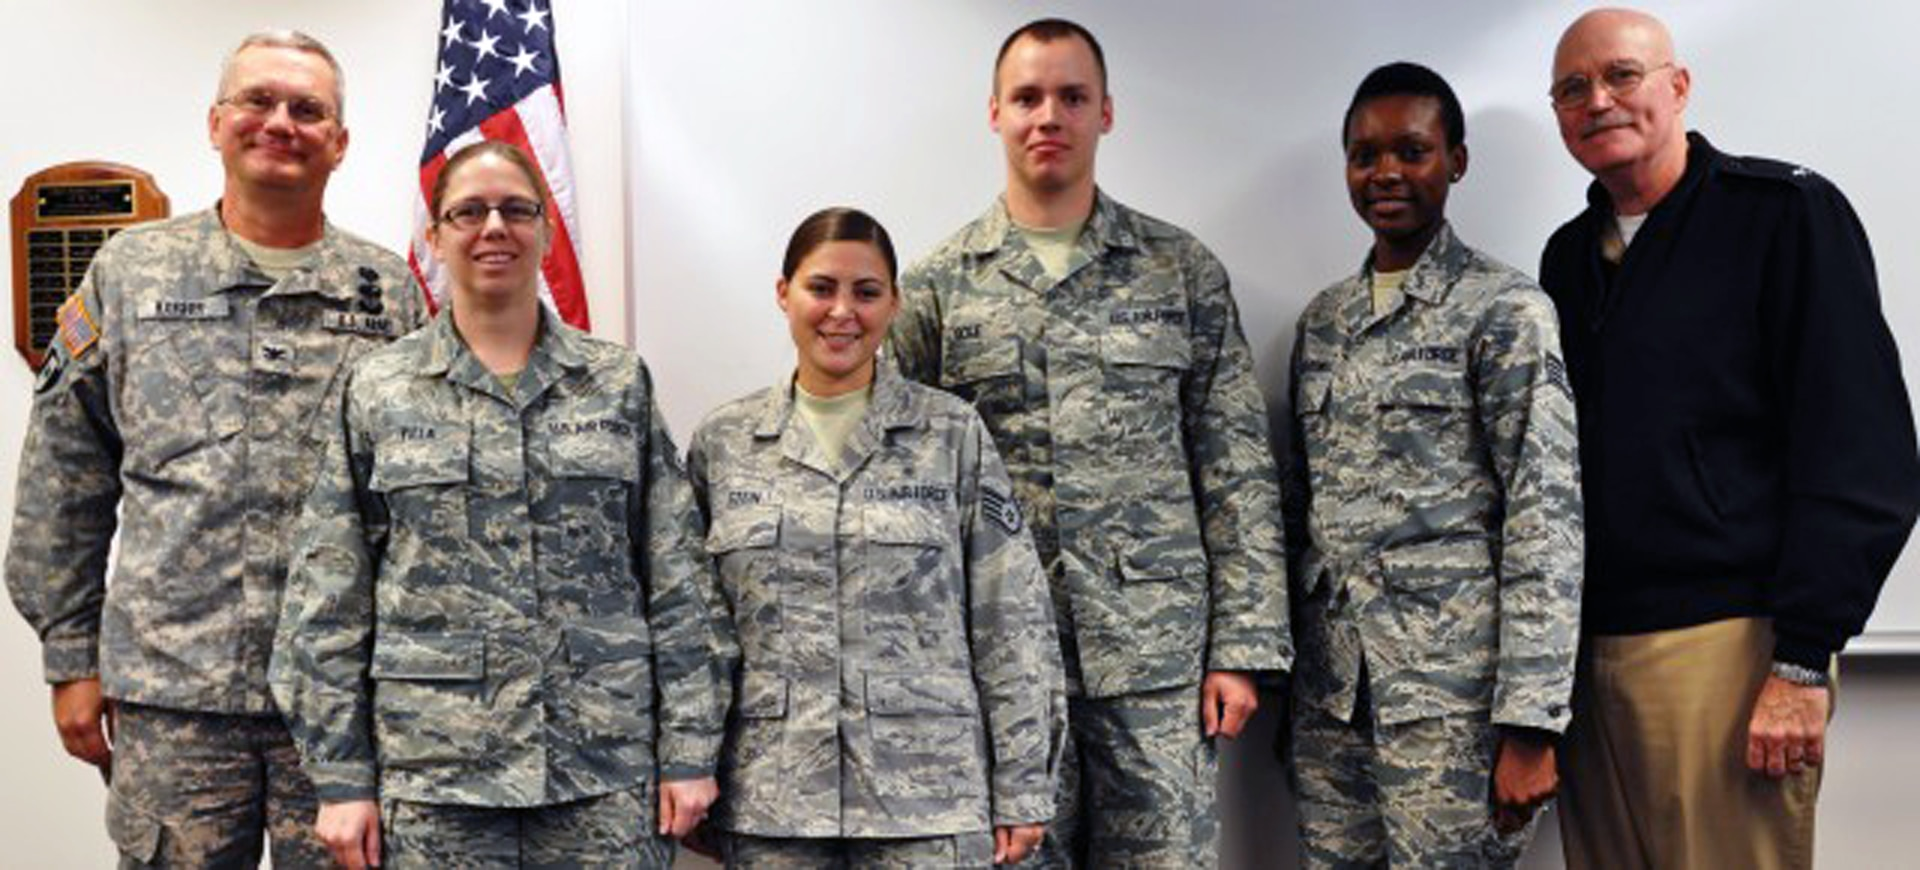 The first Medical Education and Training Campus graduates were four Air Force students who completed a two-week pharmacy craftsman course that was required for advancement. The course was previously taught at Sheppard Air Force Base in Wichita Falls, Texas, and became a joint-service course following the move to METC.